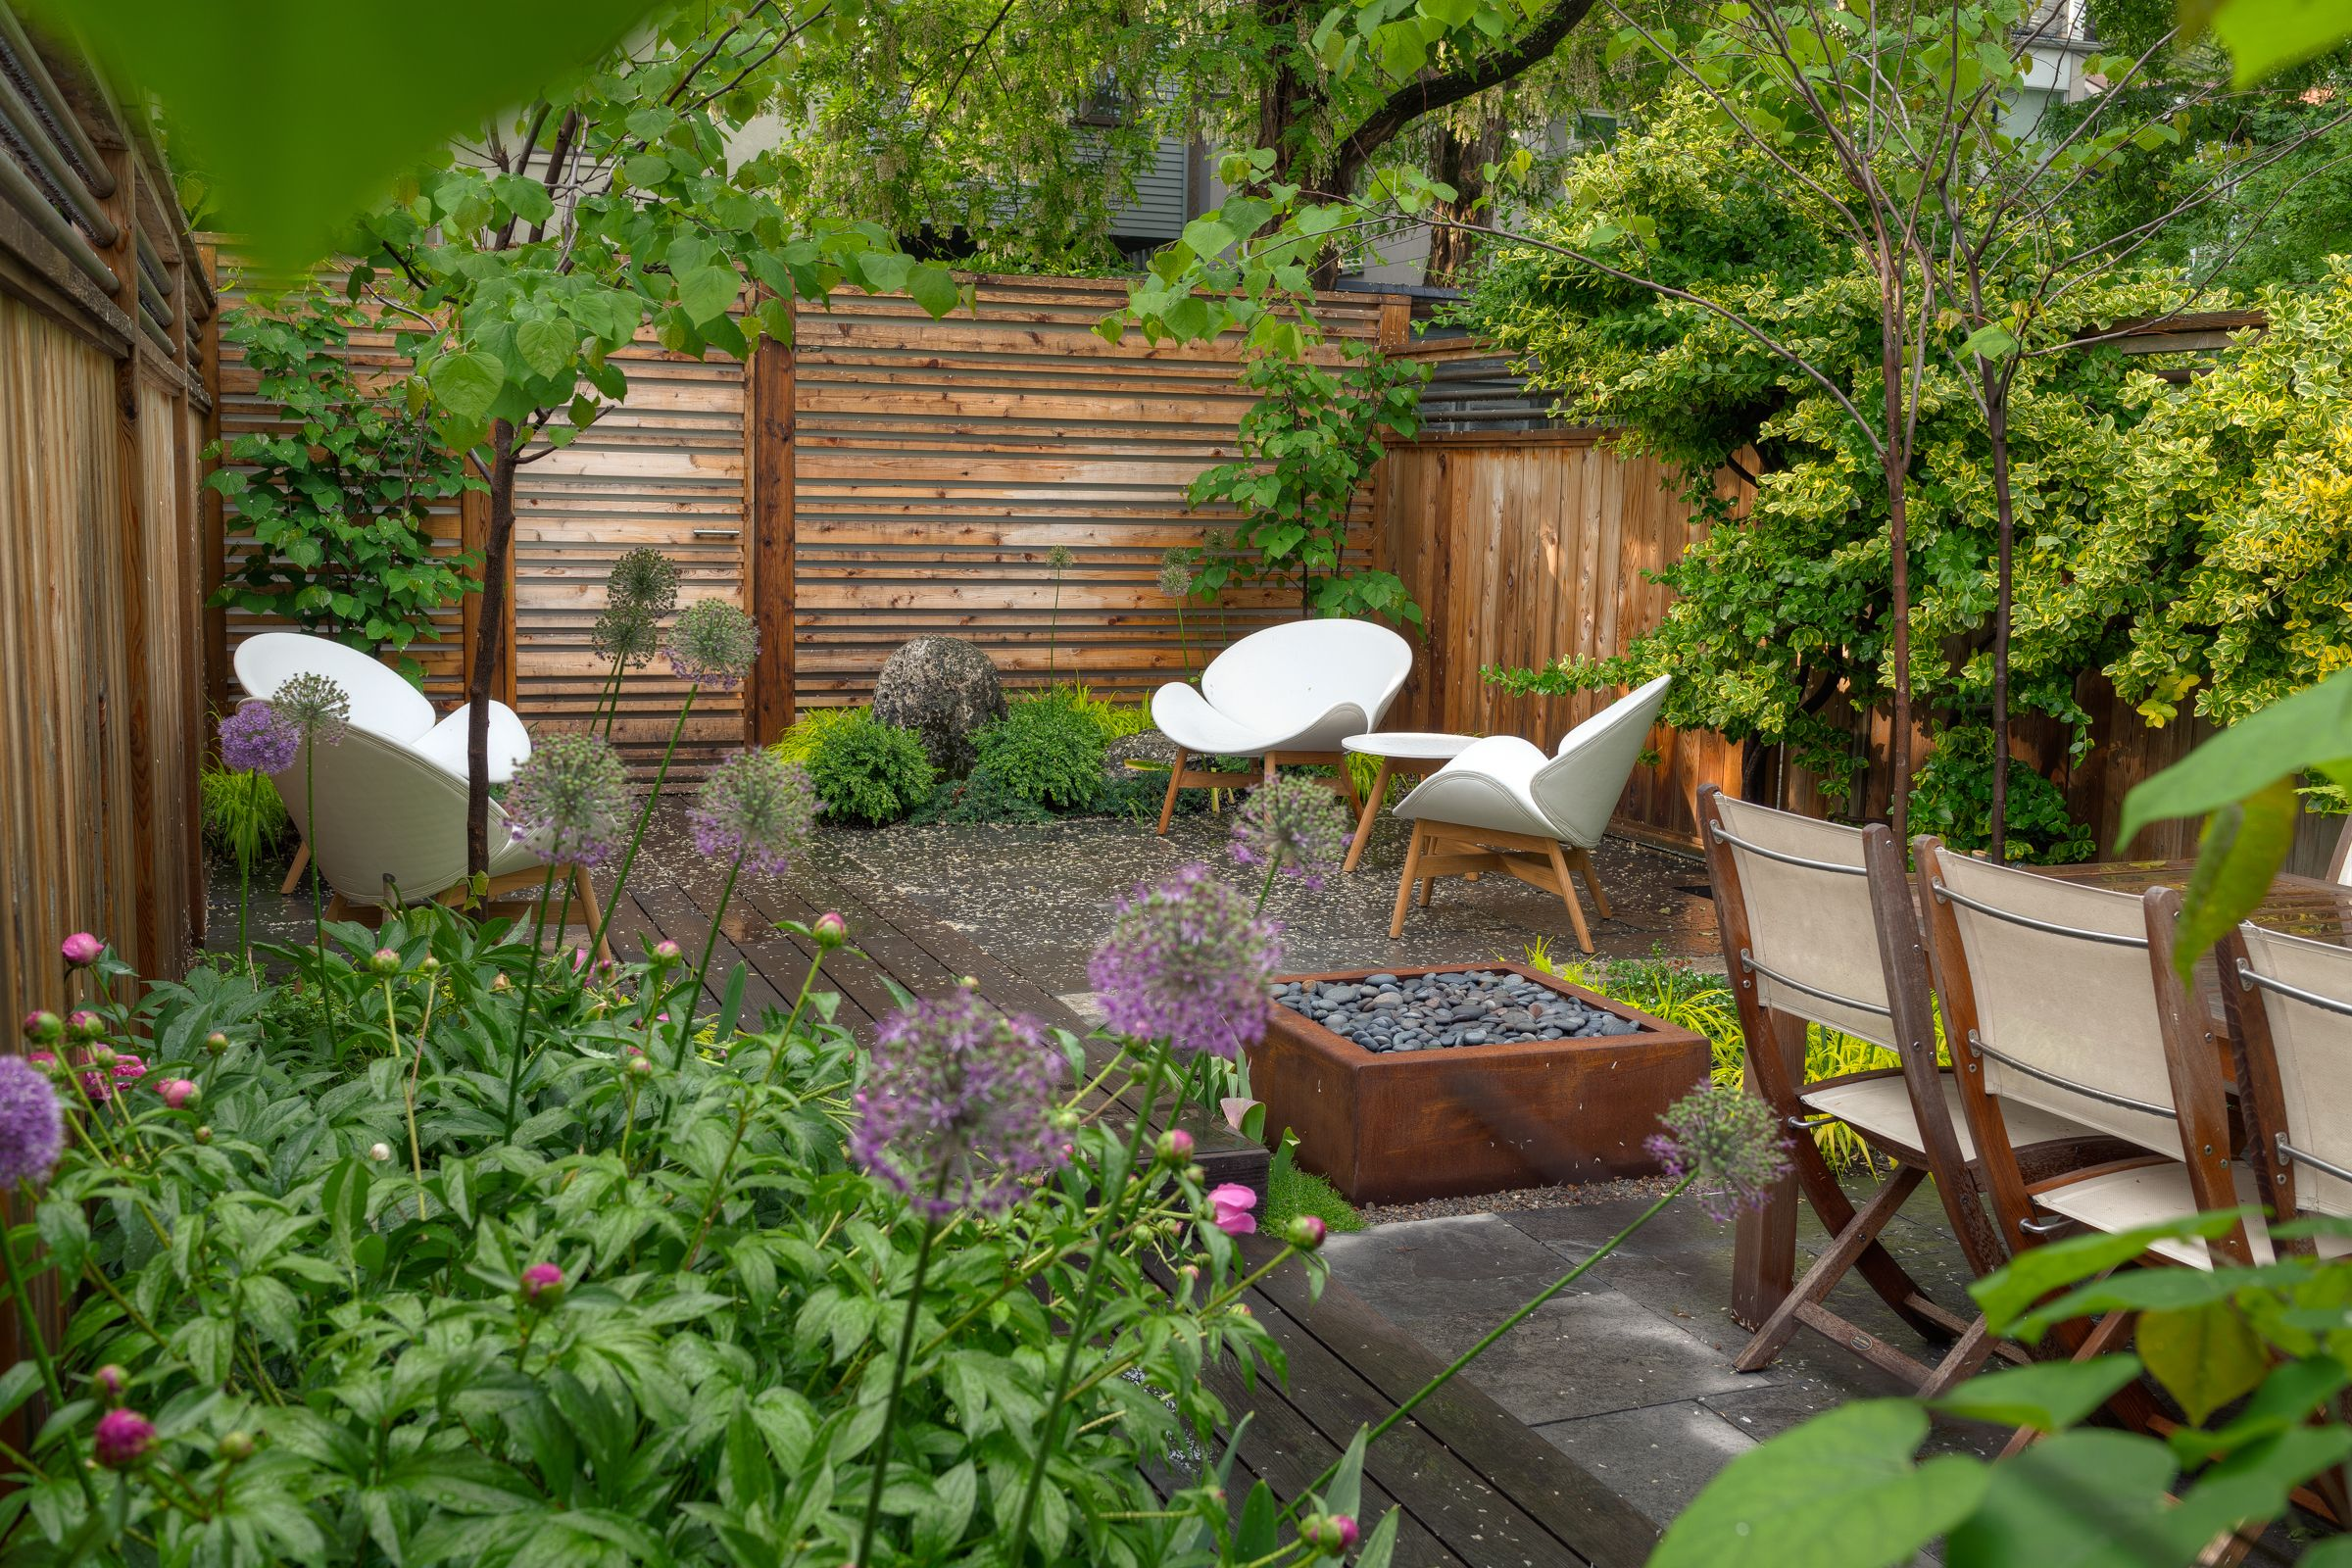 This Small Cabbage Town Garden Has A Relaxed Feel With